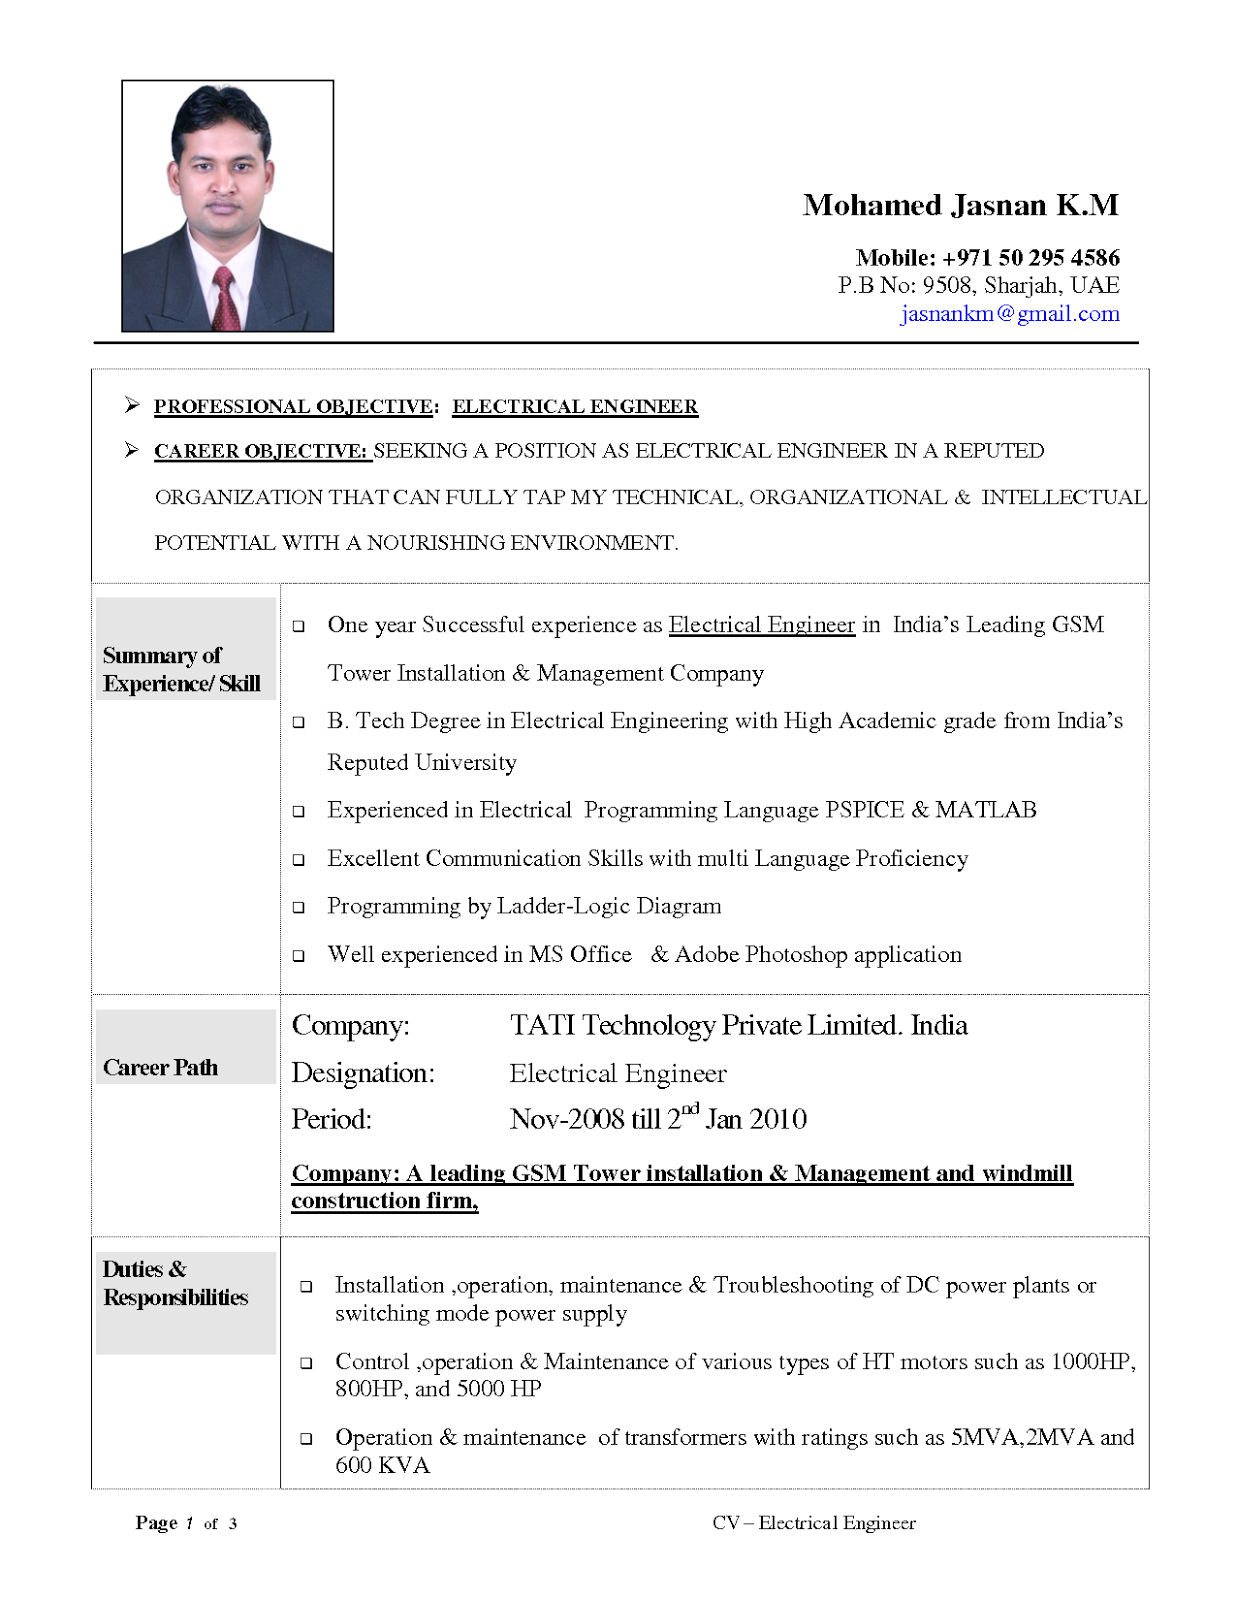 Resume objective examples electrical engineering free for Sample resume of an electrical engineer